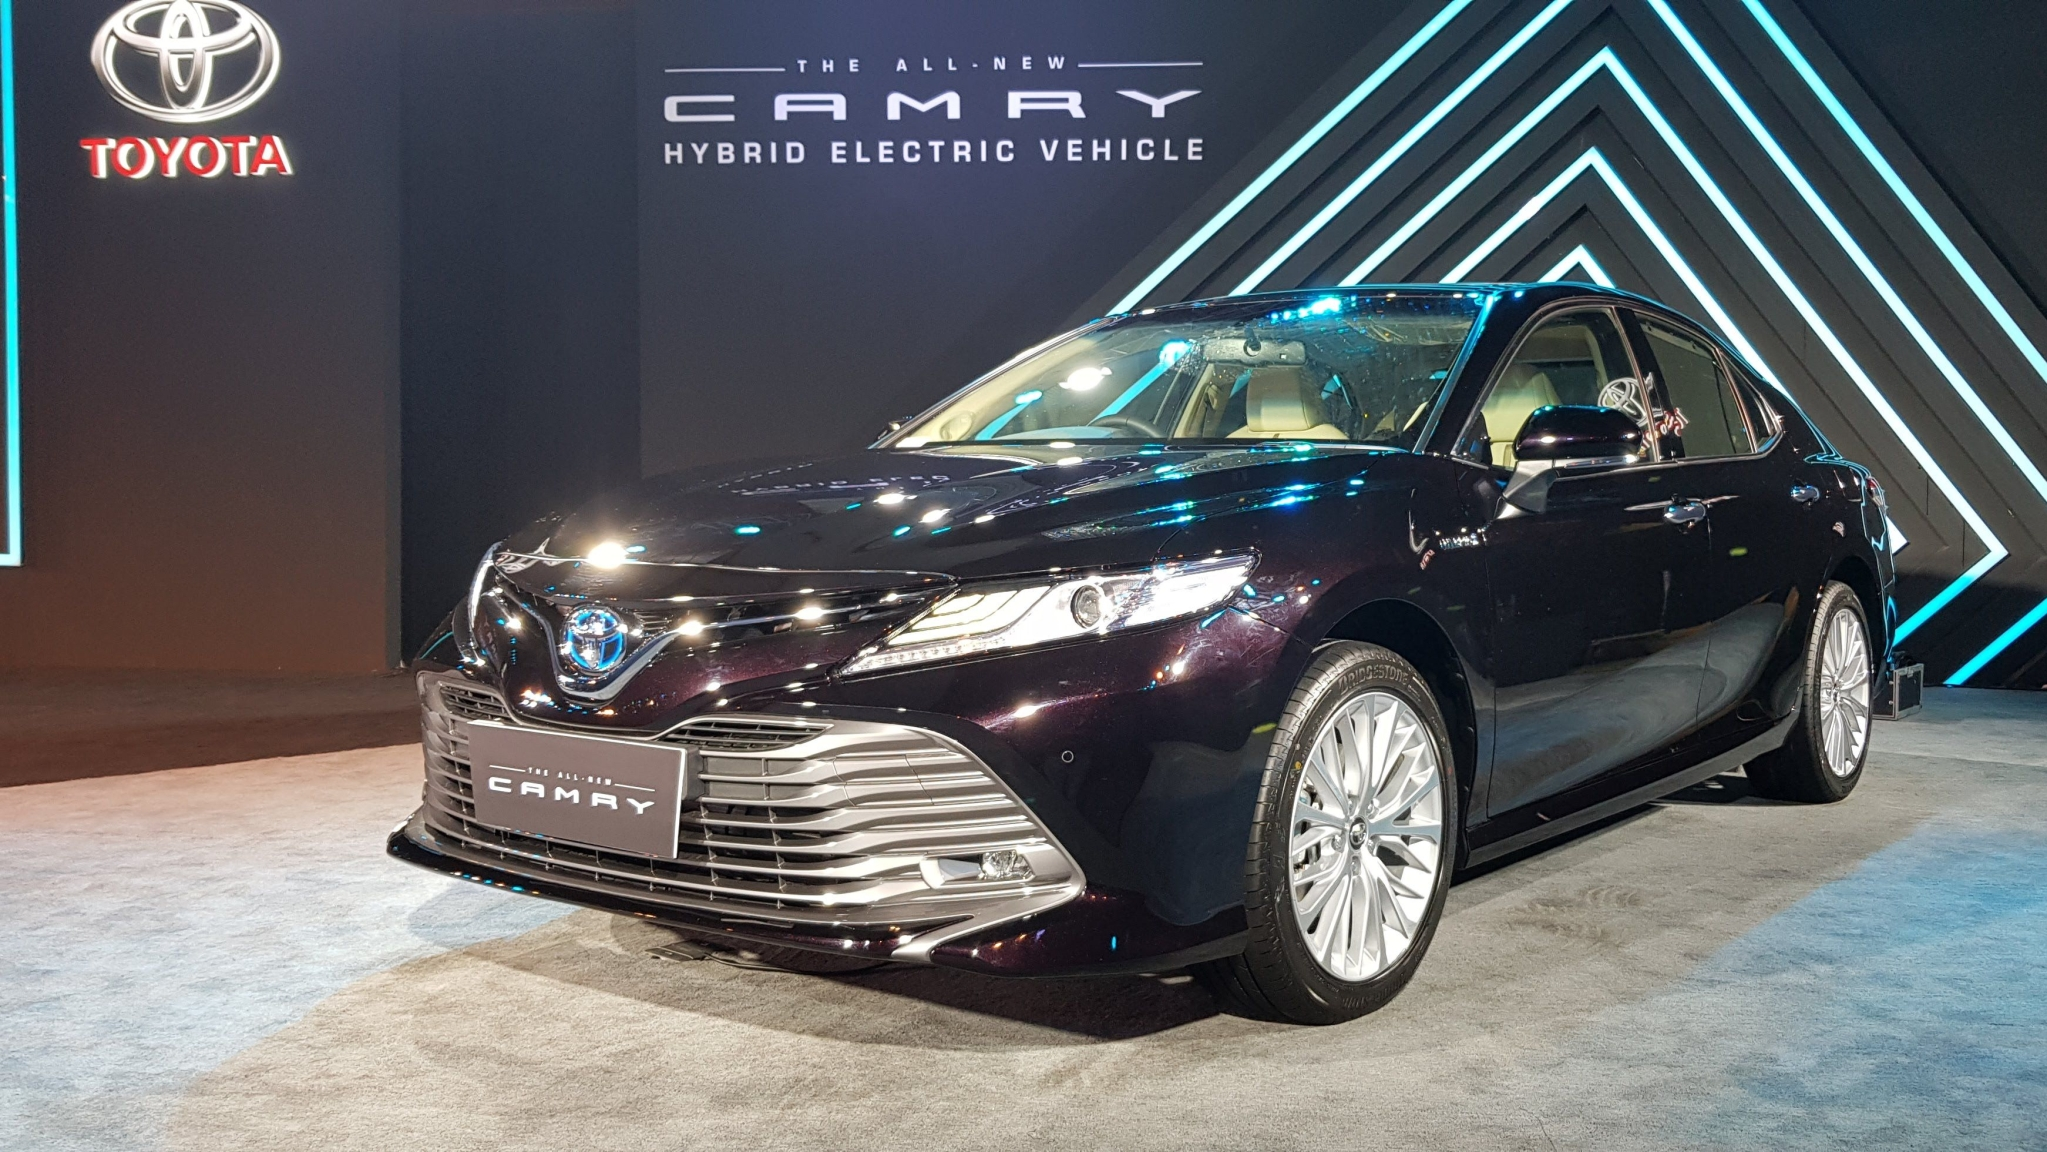 Honda Accord Price In India >> 2019 Toyota Camry Hybrid Electric Sedan Launched at Rs 36 ...